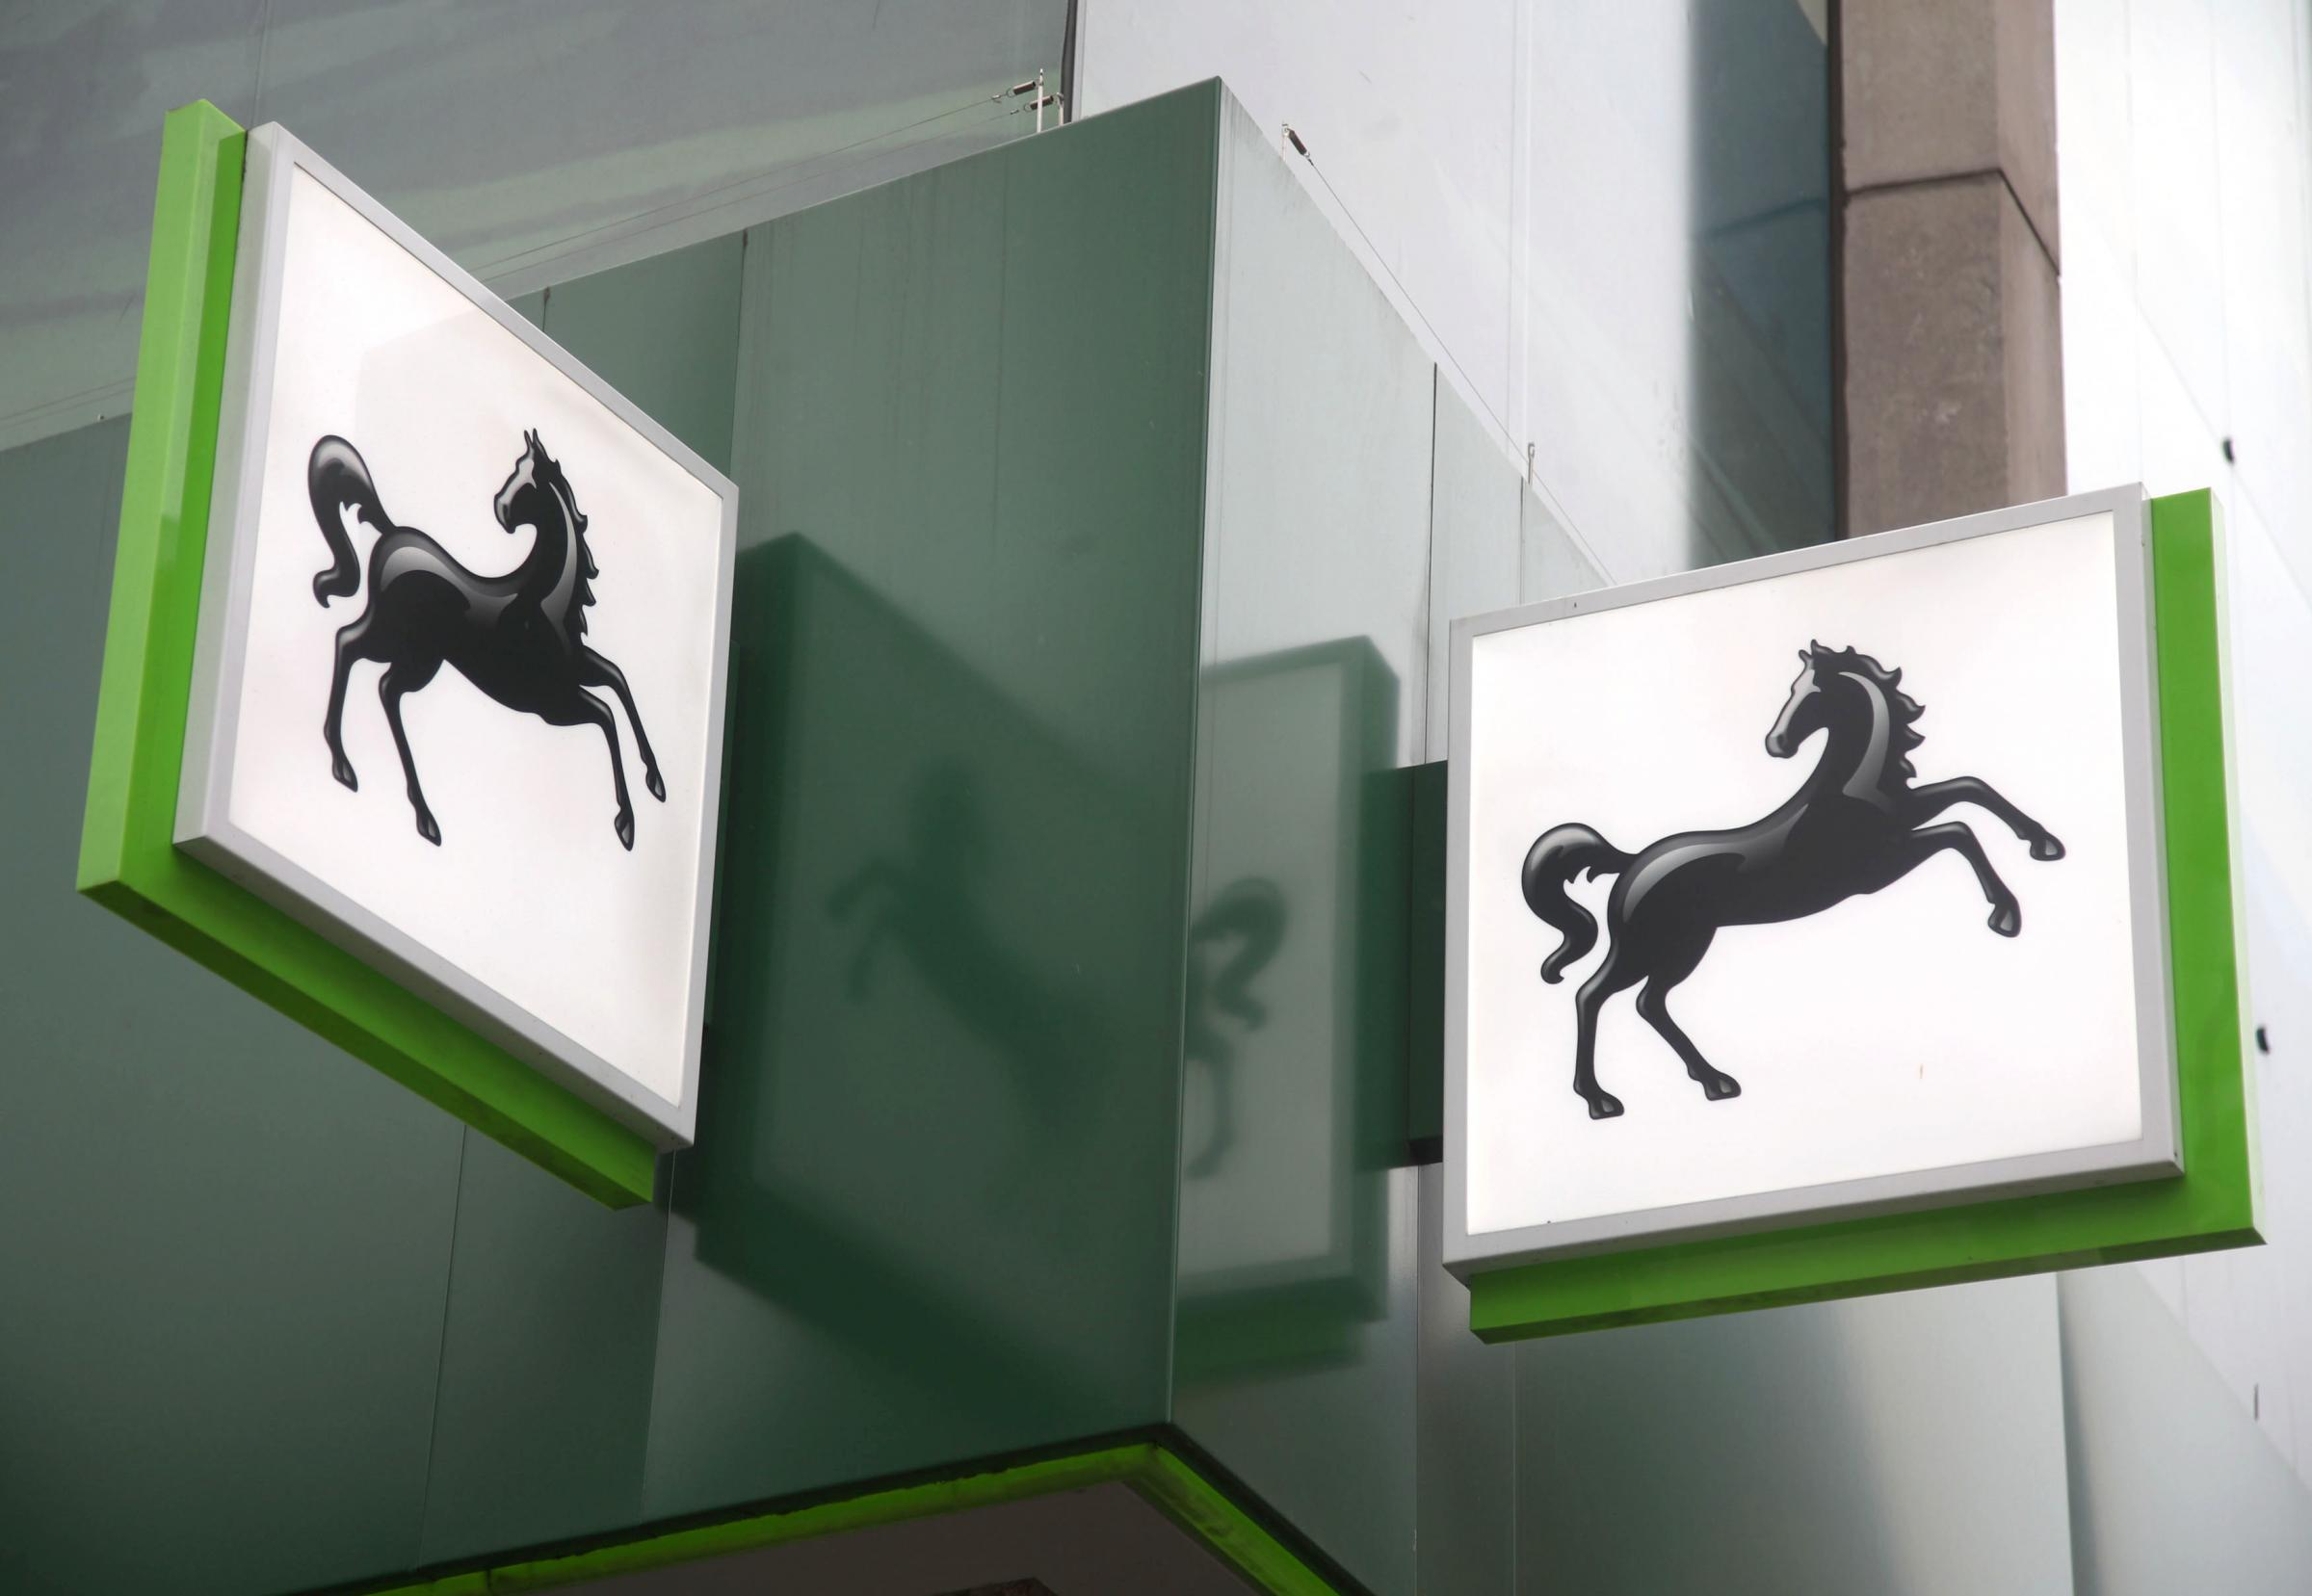 Some Lloyds customers were locked out of their accounts and were unable to access online services